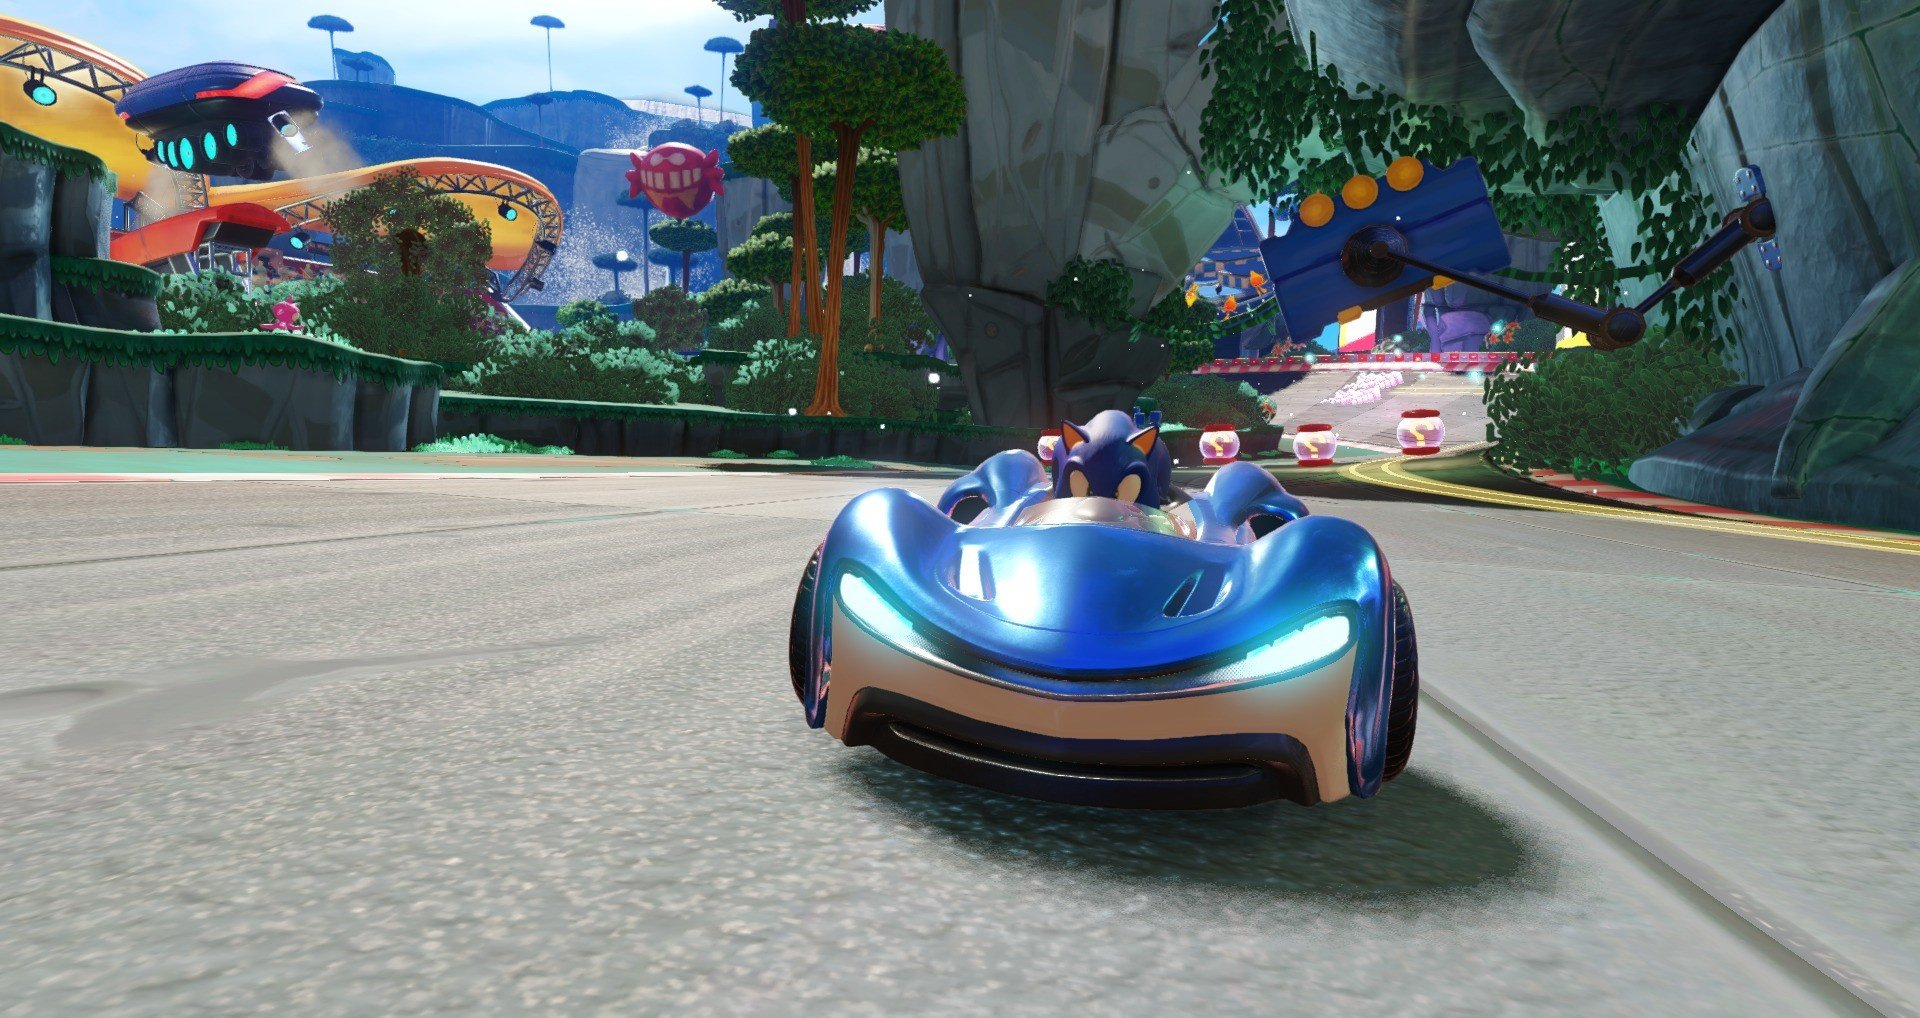 Hands On: Team Sonic Racing Takes a Tailspin on PS4 - Push Square